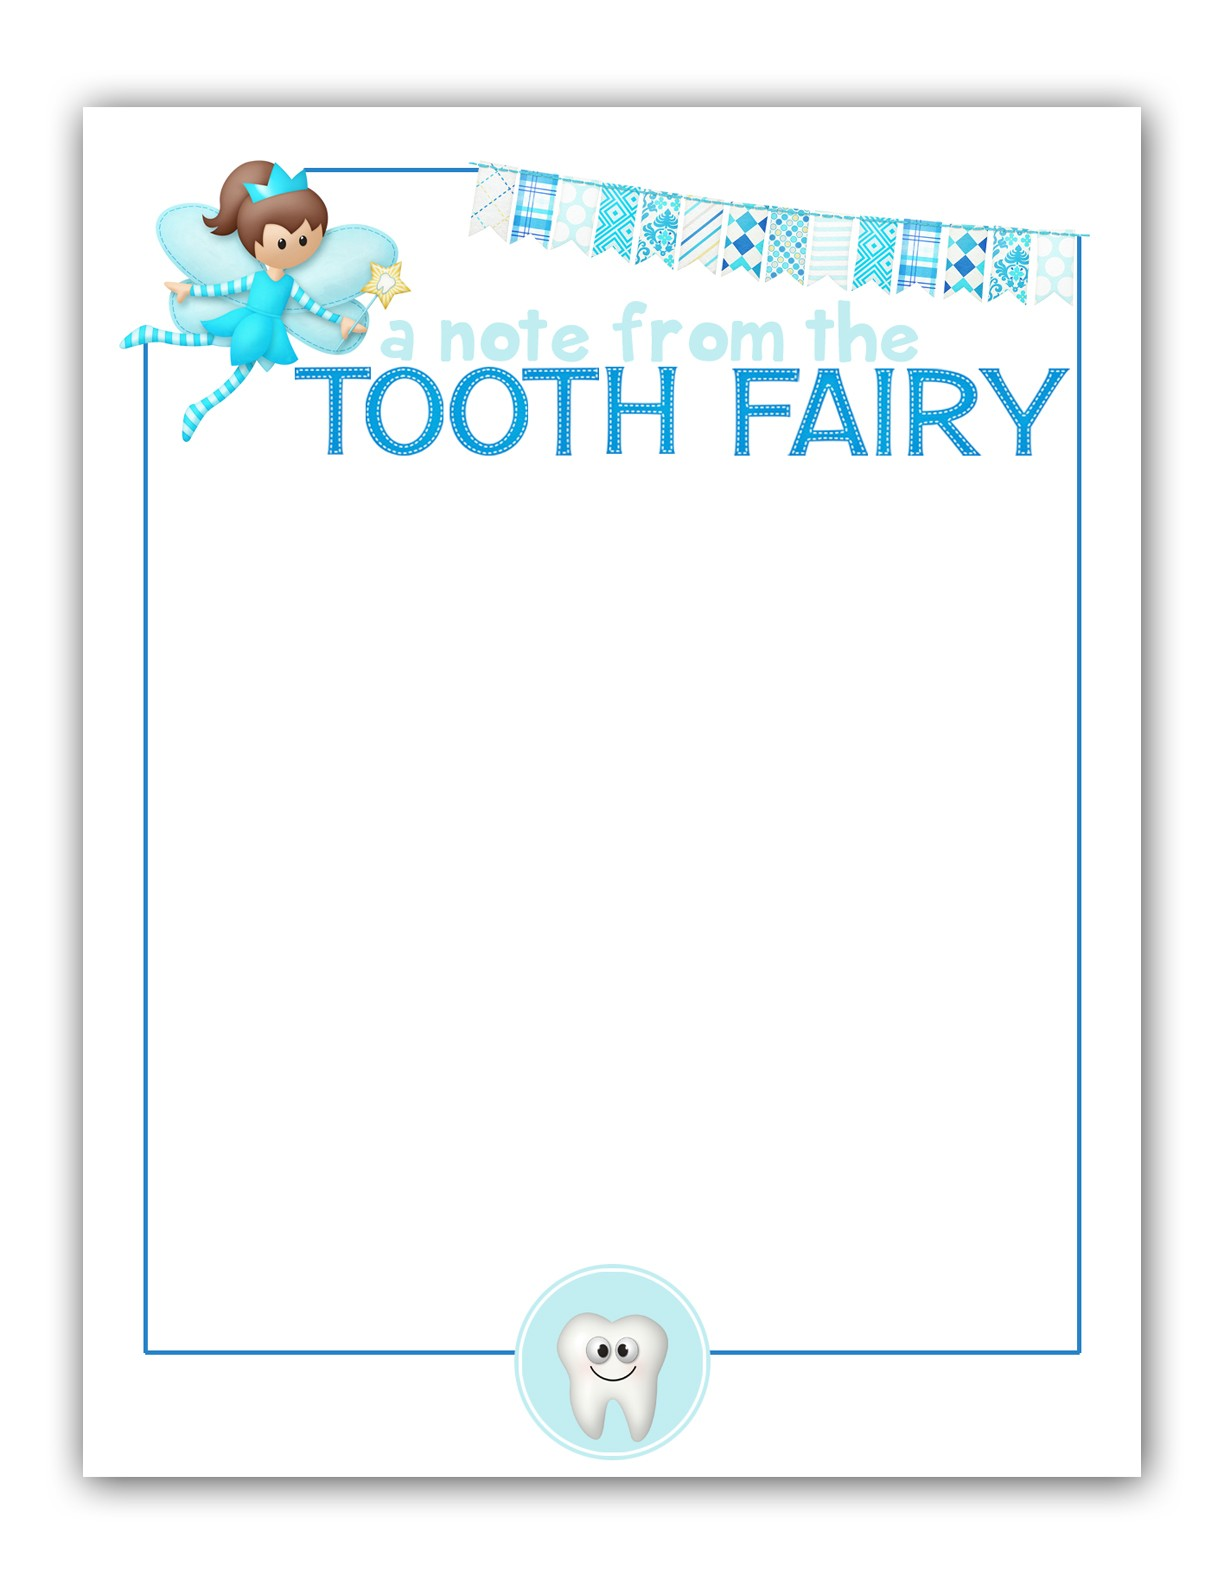 tooth fairy letter template free  M|K Designs Blog: Tooth Fairy Stationary - FREE Printable - tooth fairy letter template free